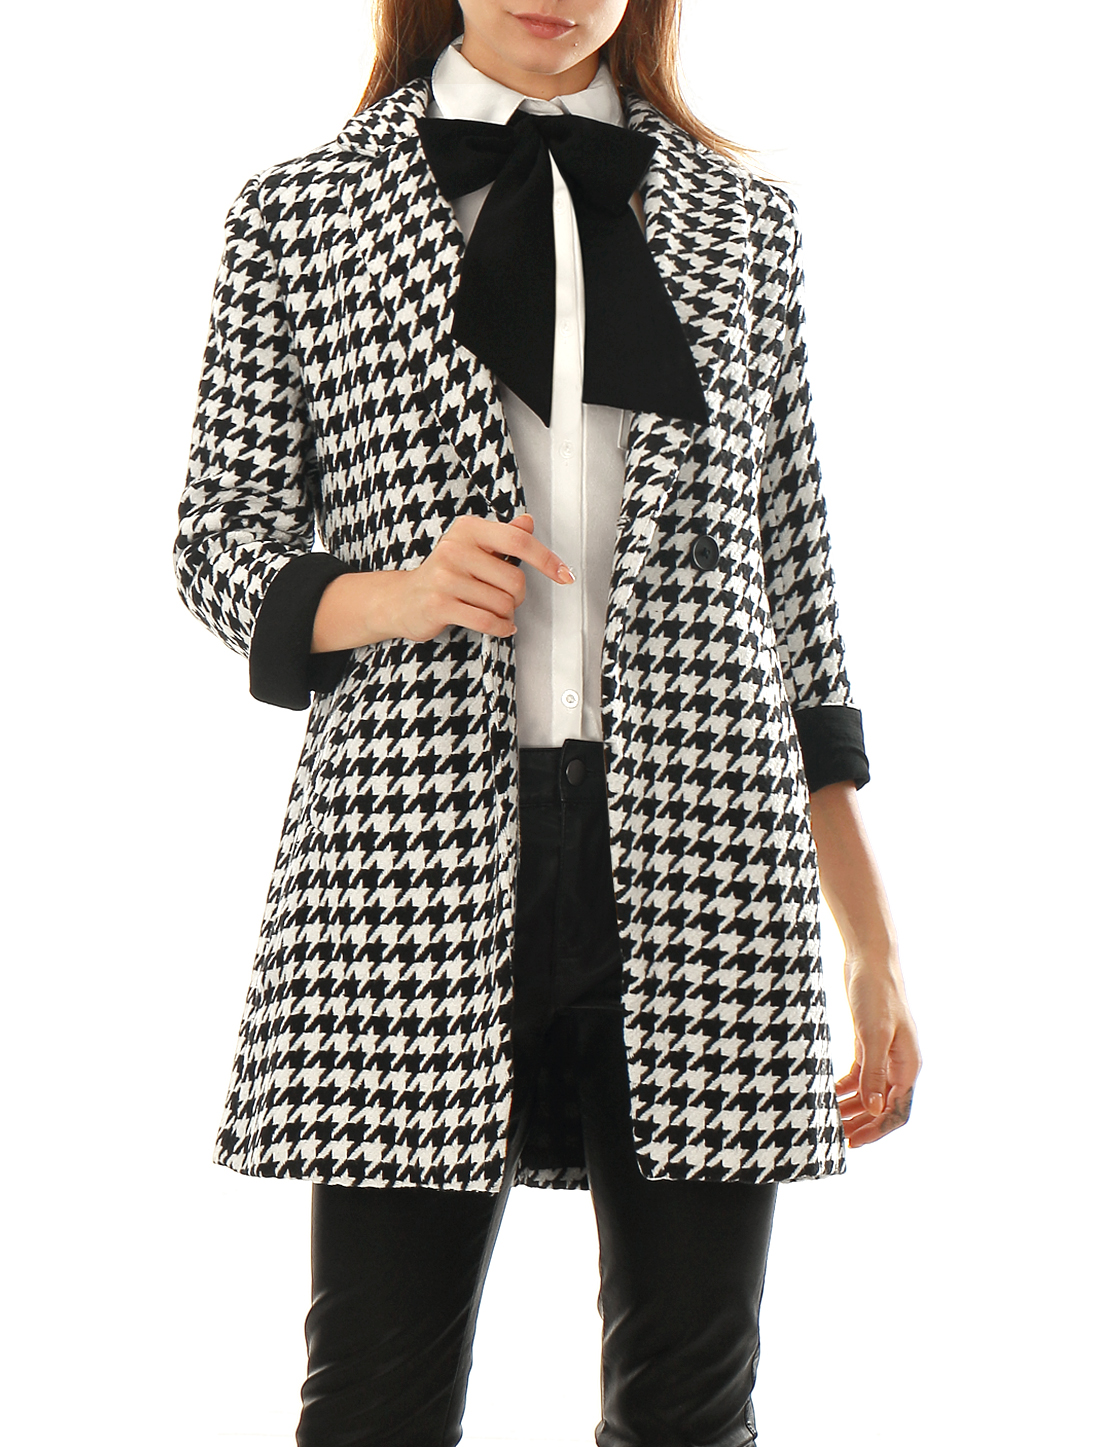 Women Houndstooth Pattern Double Breasted Worsted Coat Black XL